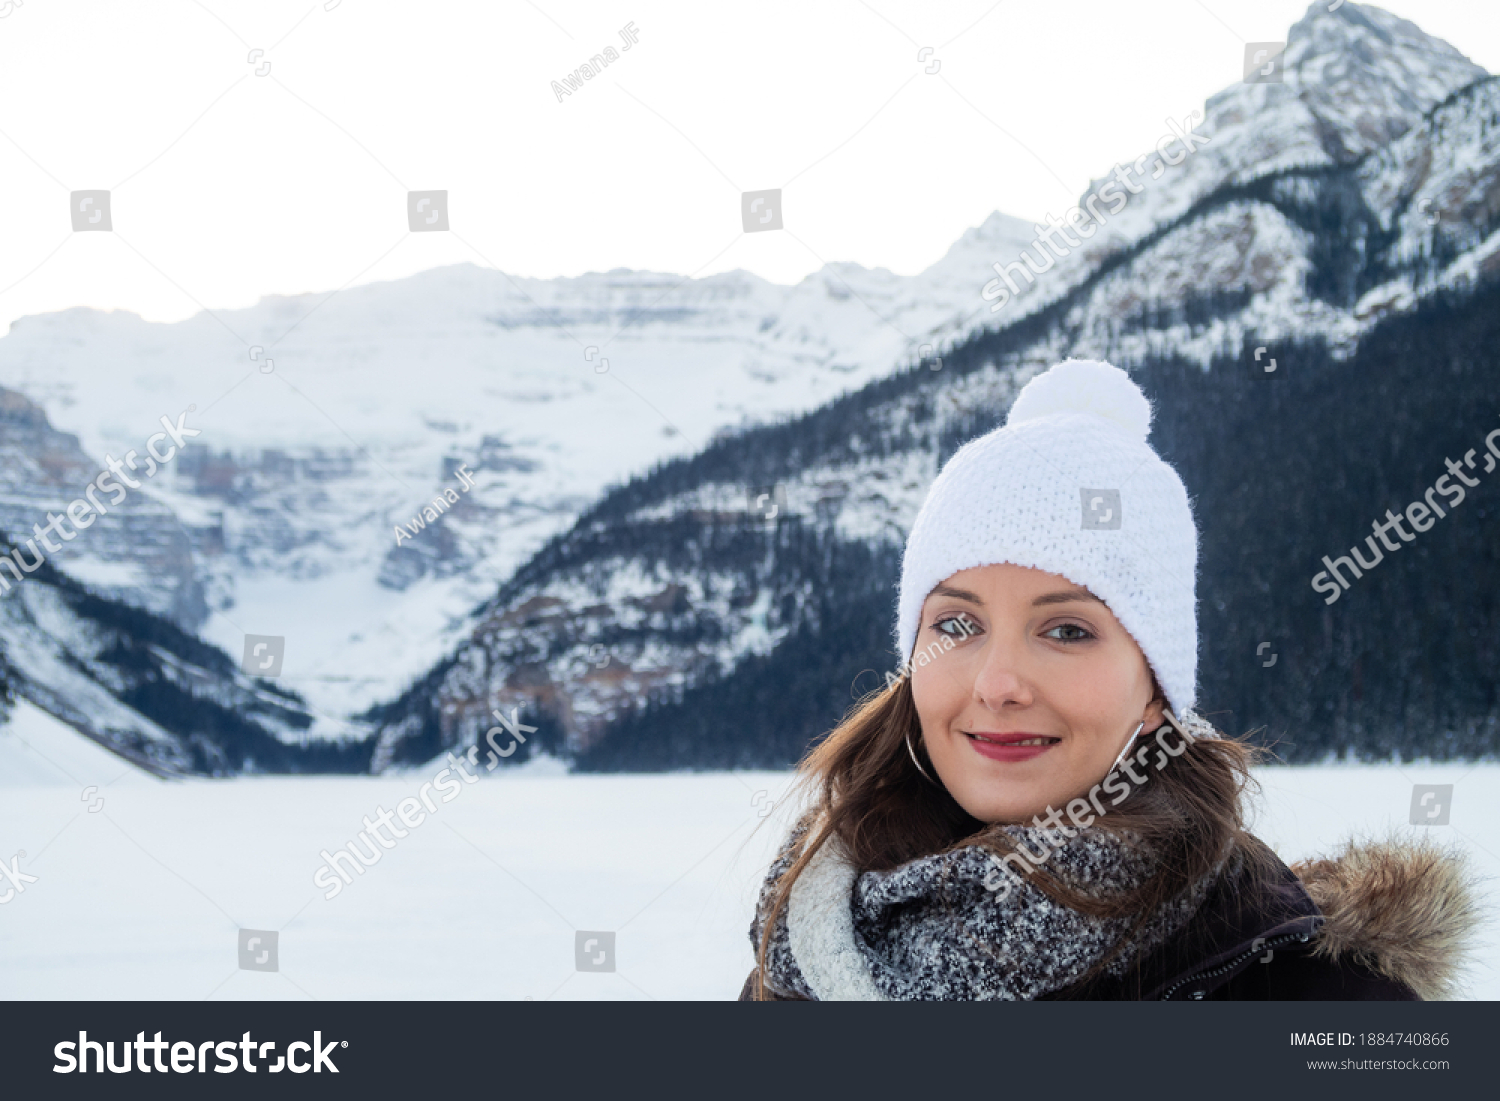 Portrait of a young woman posing at Lake Louise, in the Banff national park, Canada